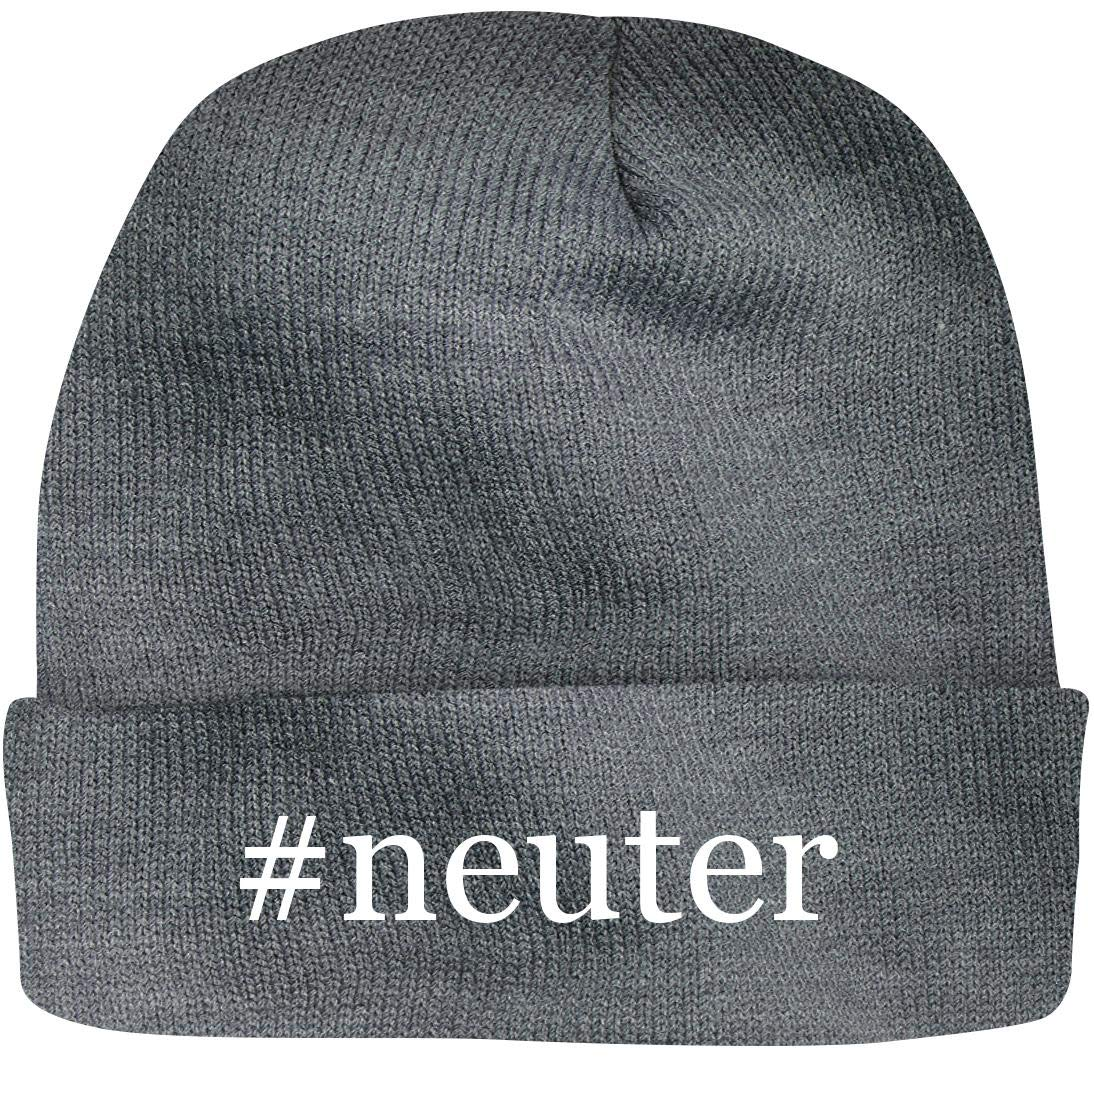 SHIRT ME UP #Neuter - A Nice Hashtag Beanie Cap, Grey, OSFA by SHIRT ME UP